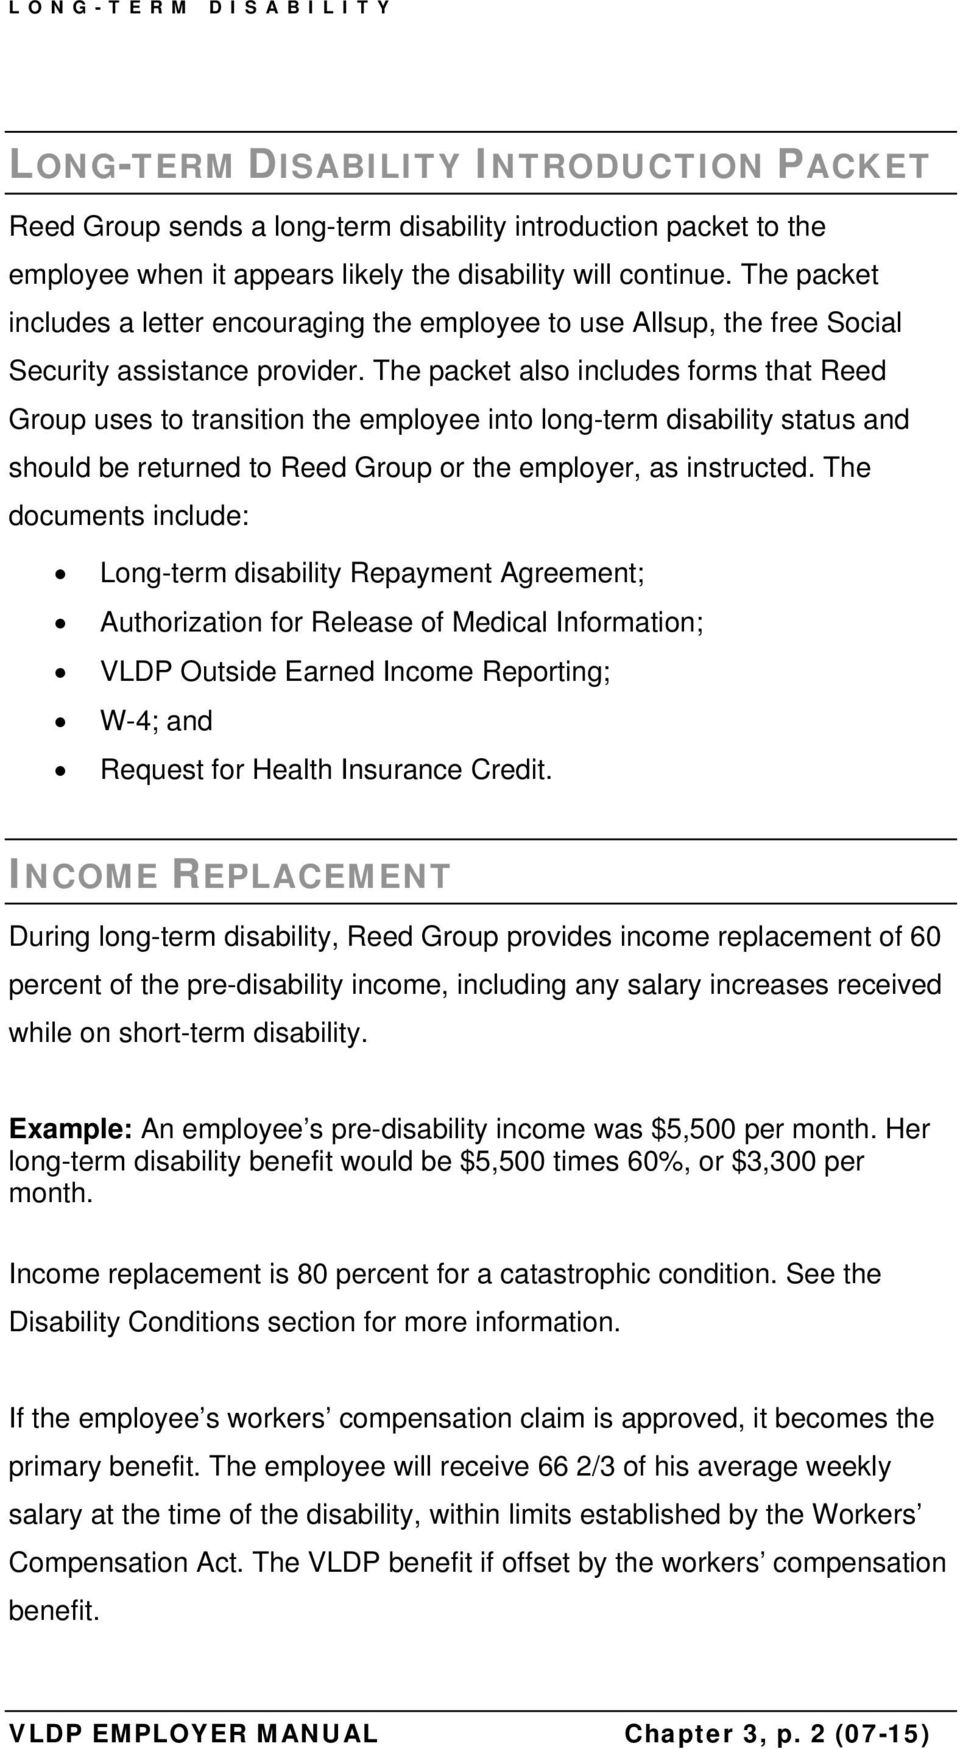 The packet also includes forms that Reed Group uses to transition the employee into long-term disability status and should be returned to Reed Group or the employer, as instructed.